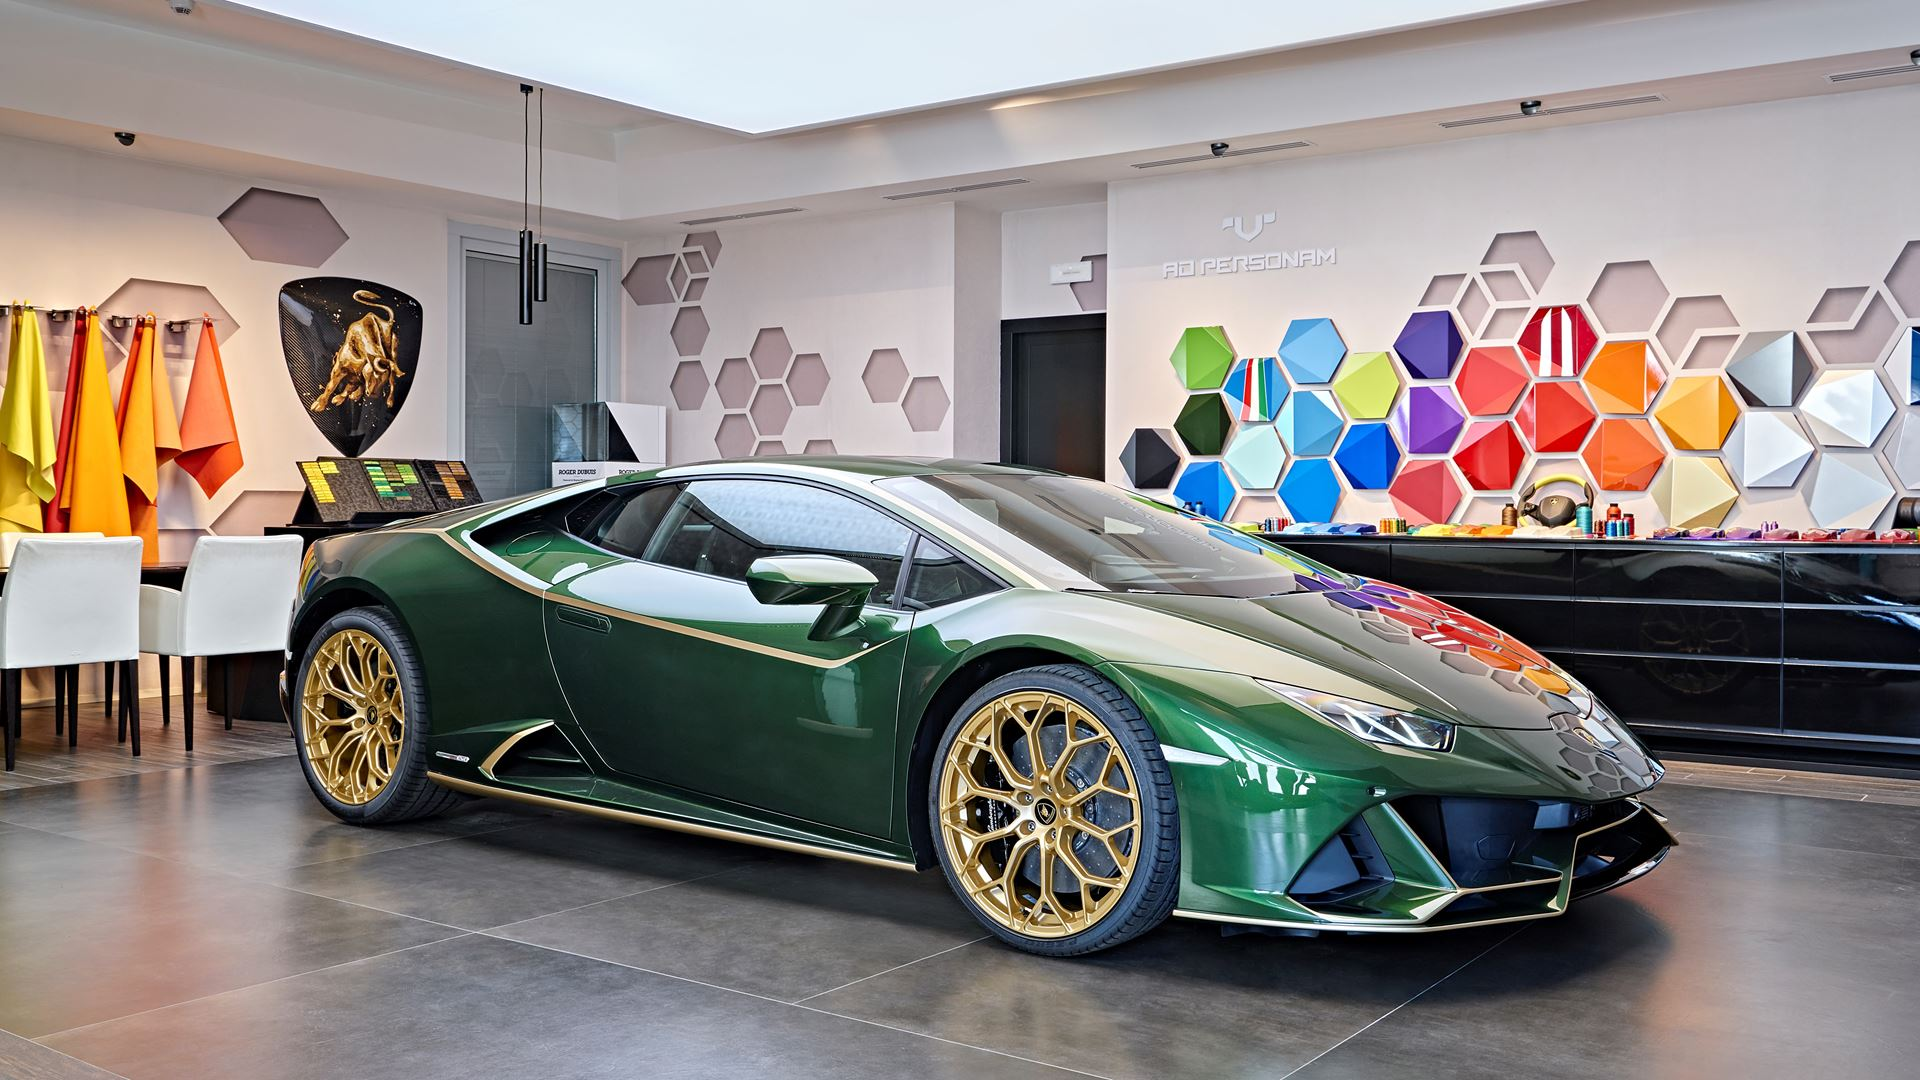 Lamborghini Mexico Commissions Special Edition Models To Commemorate 10 Years in the Region - Image 1